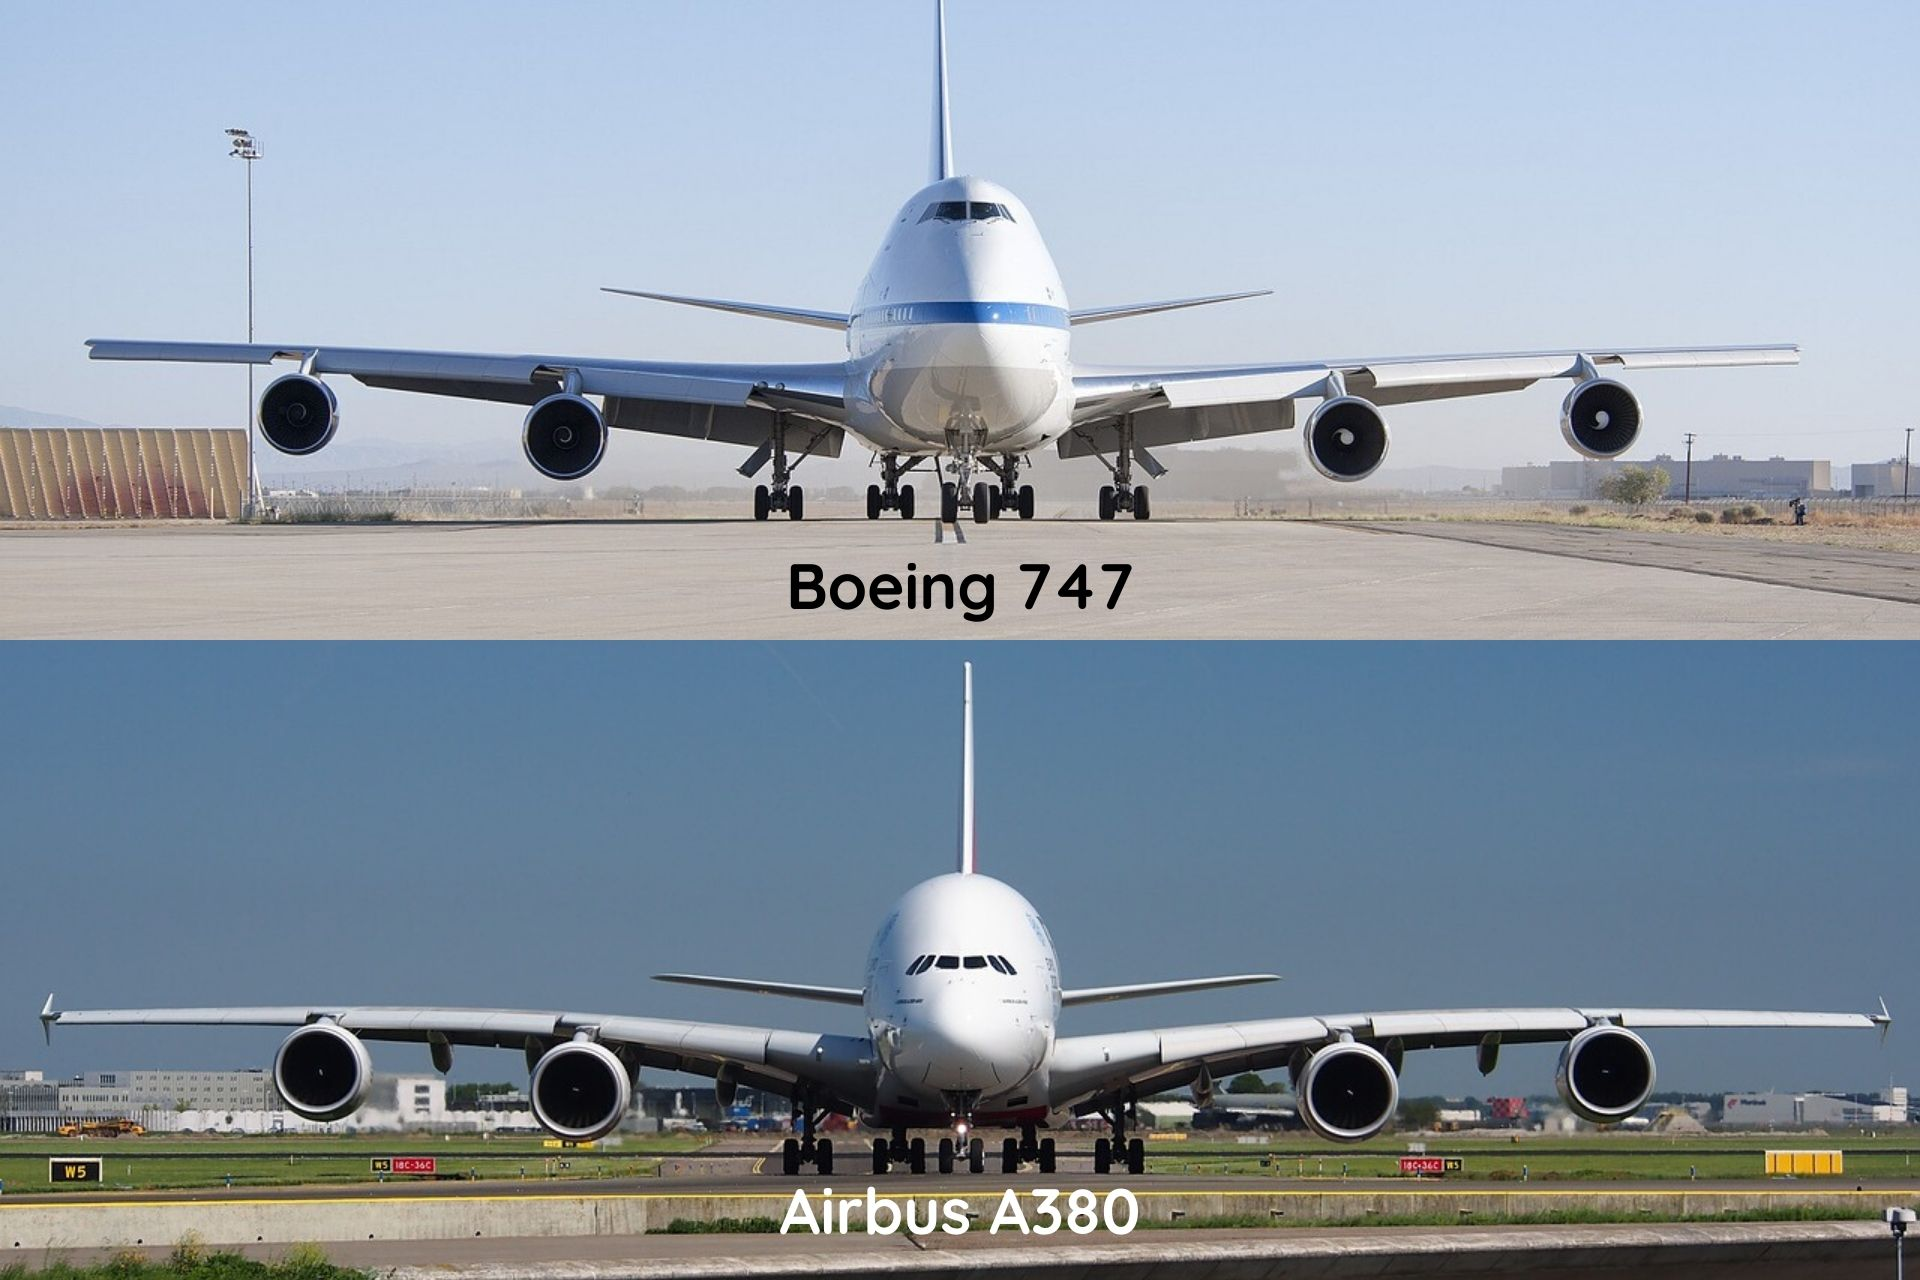 A380 and B747